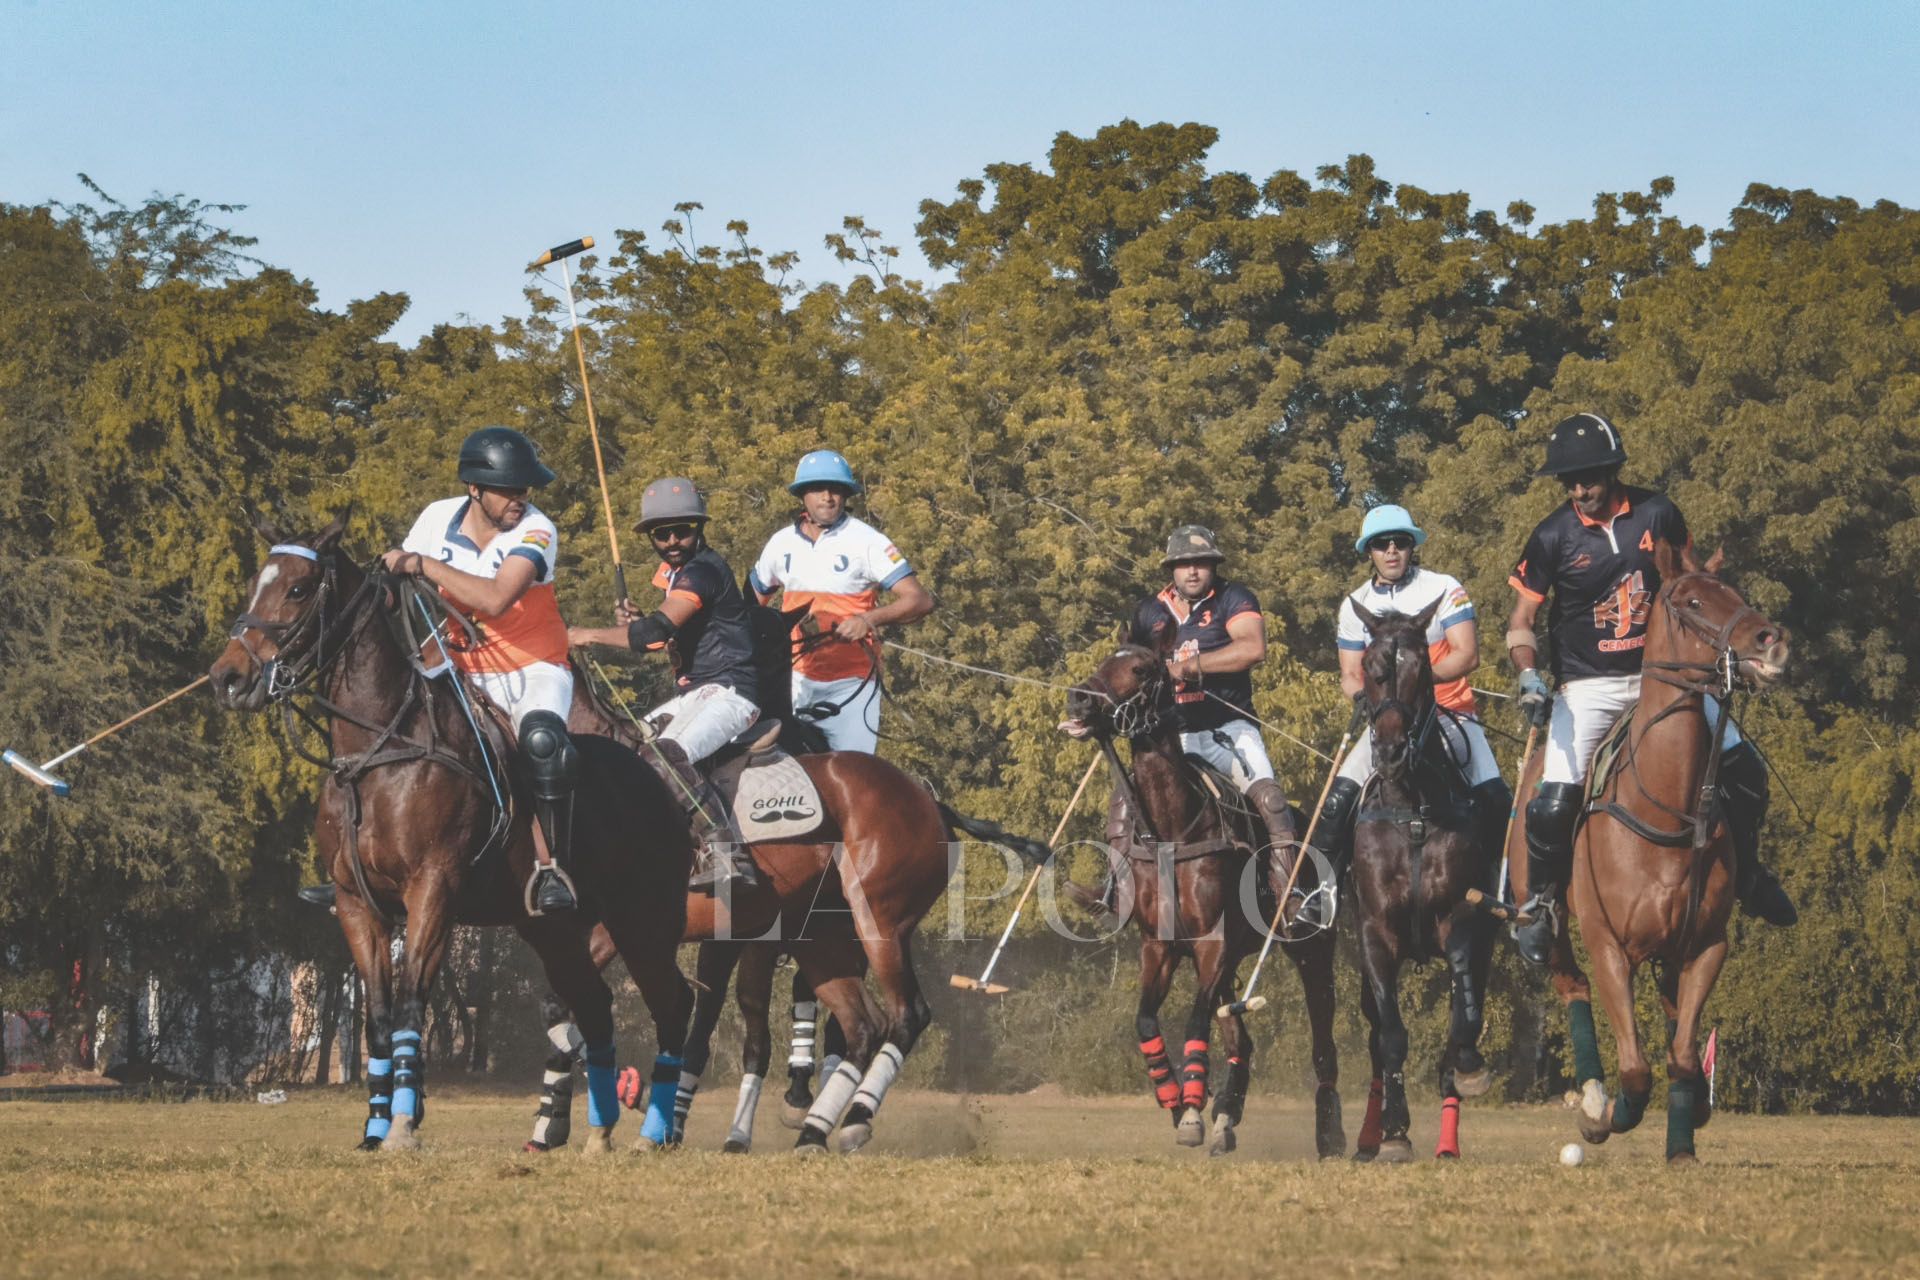 KJS ACHIEVERS DEFEAT JODHPUR POLO FACTORY AT THE POLO FACTORY MAHARAJA OF JODHPUR GOLDEN JUBILEE CUP (10 Goals), 21ST JODHPUR POLO SEASON 2020!